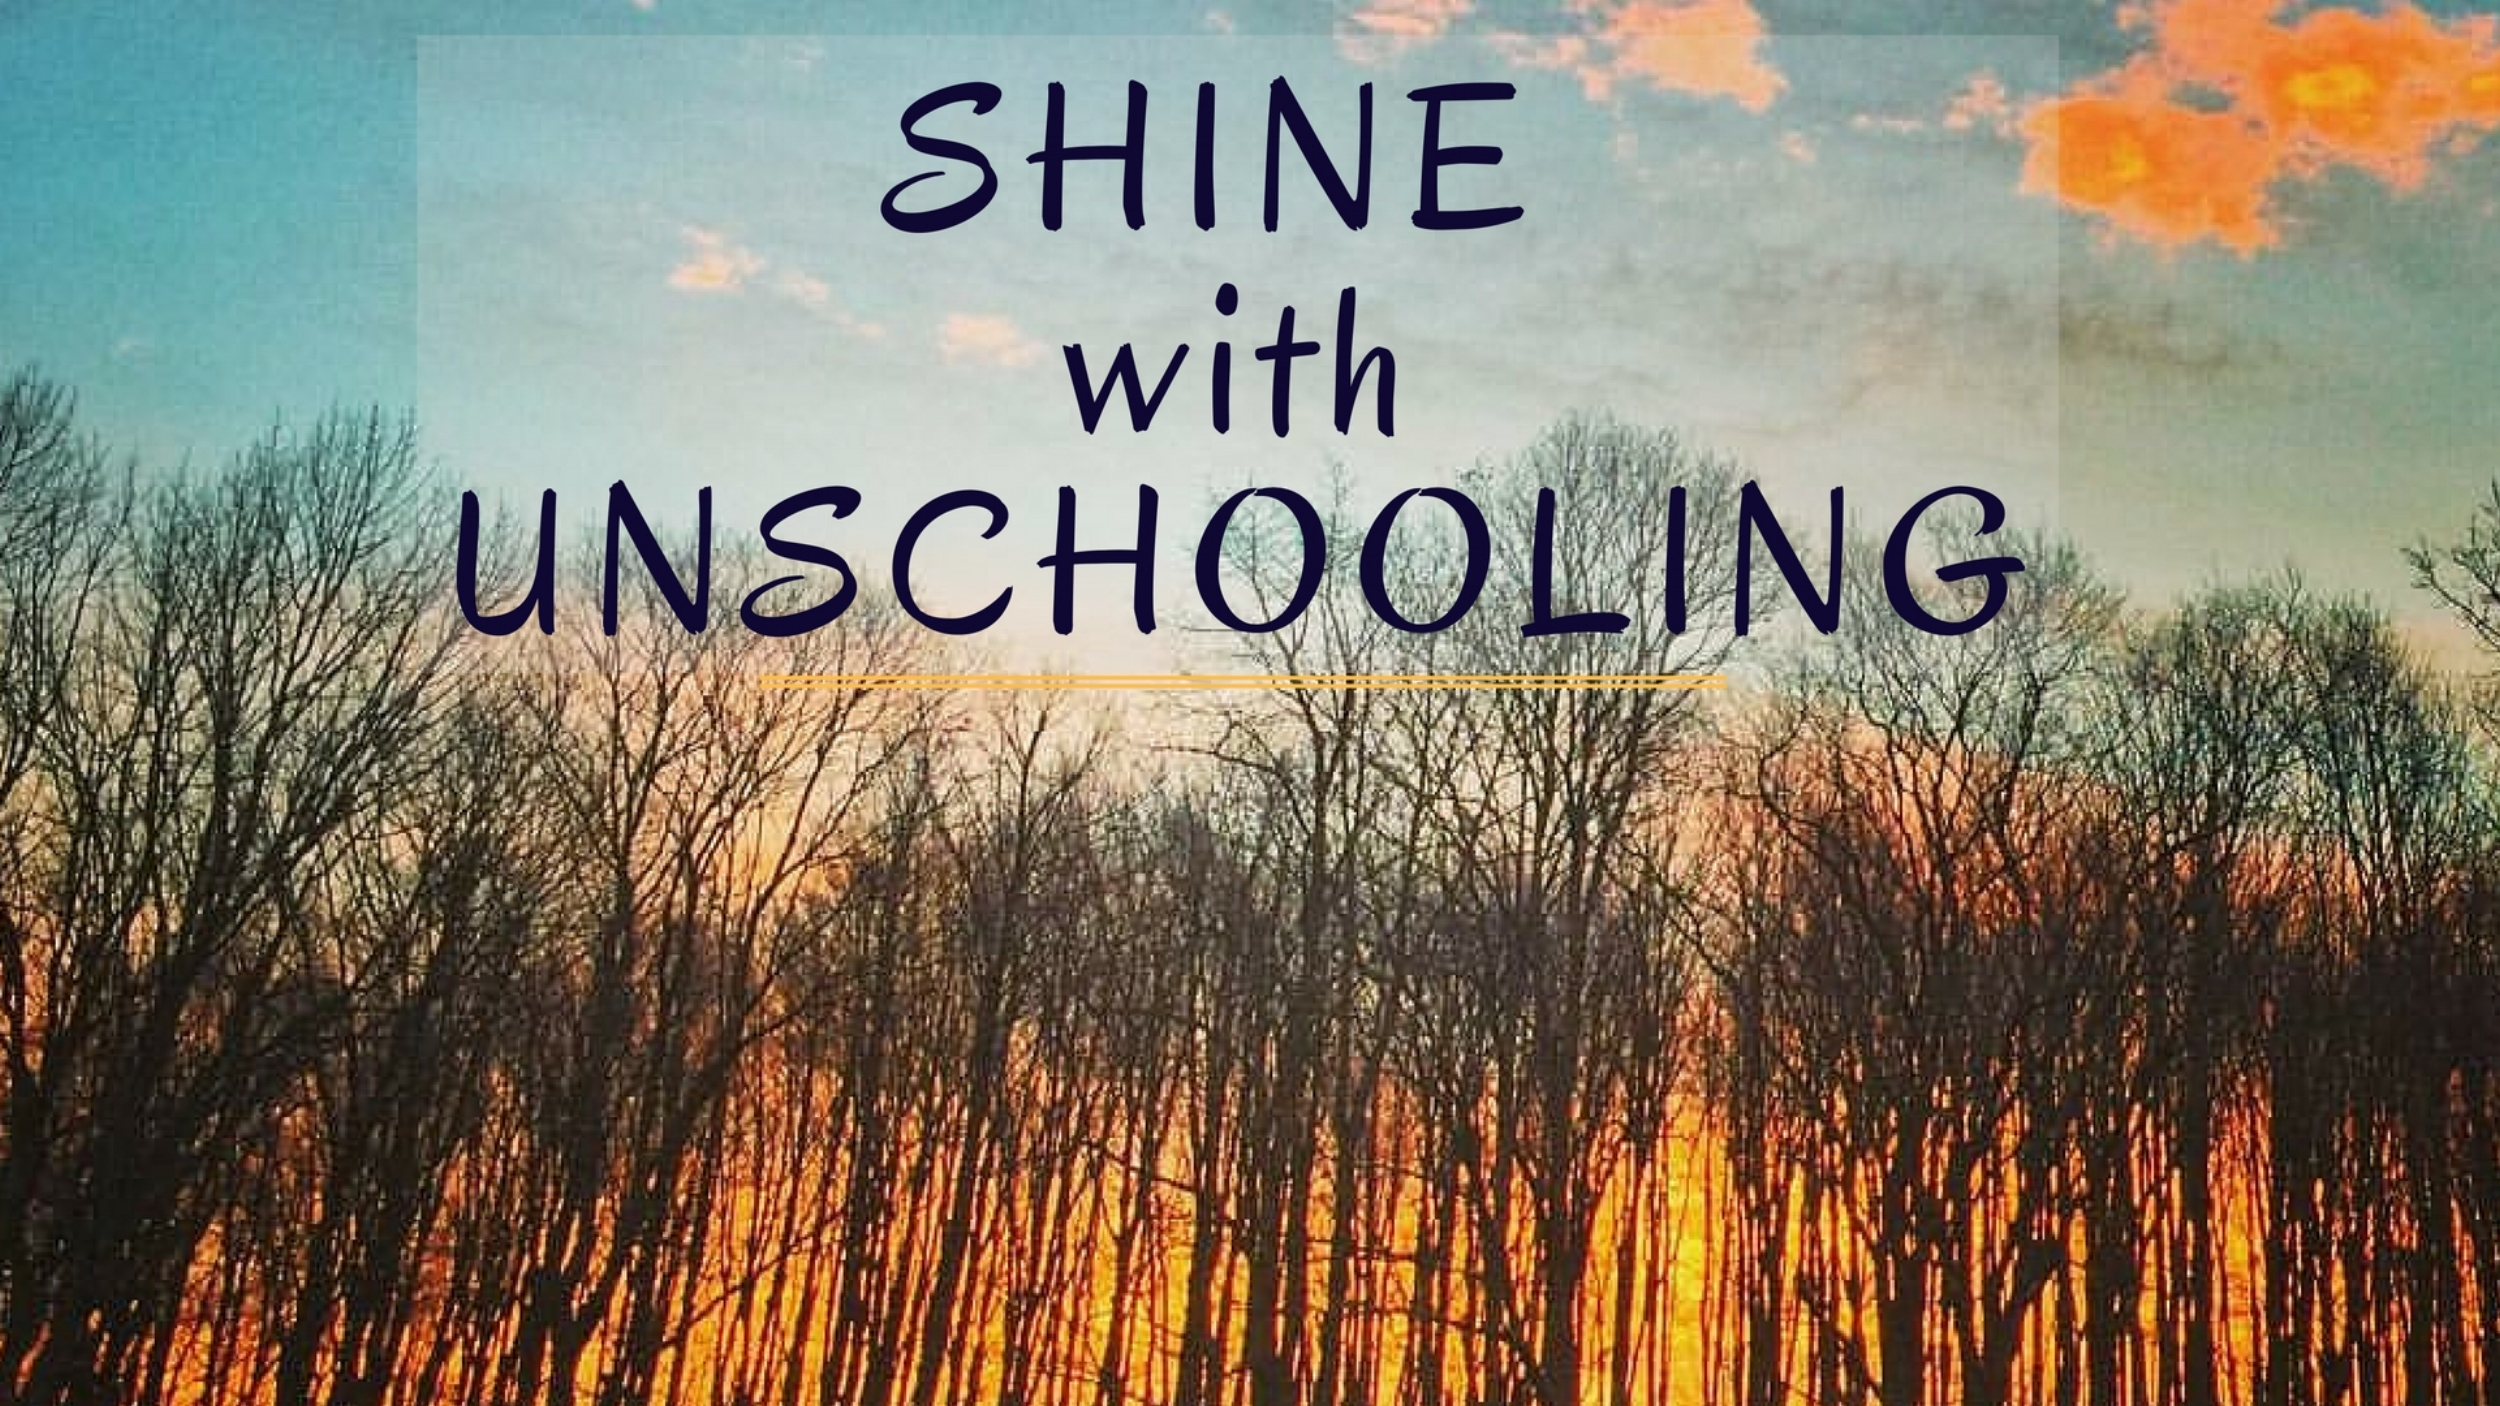 Shine with Unschooling